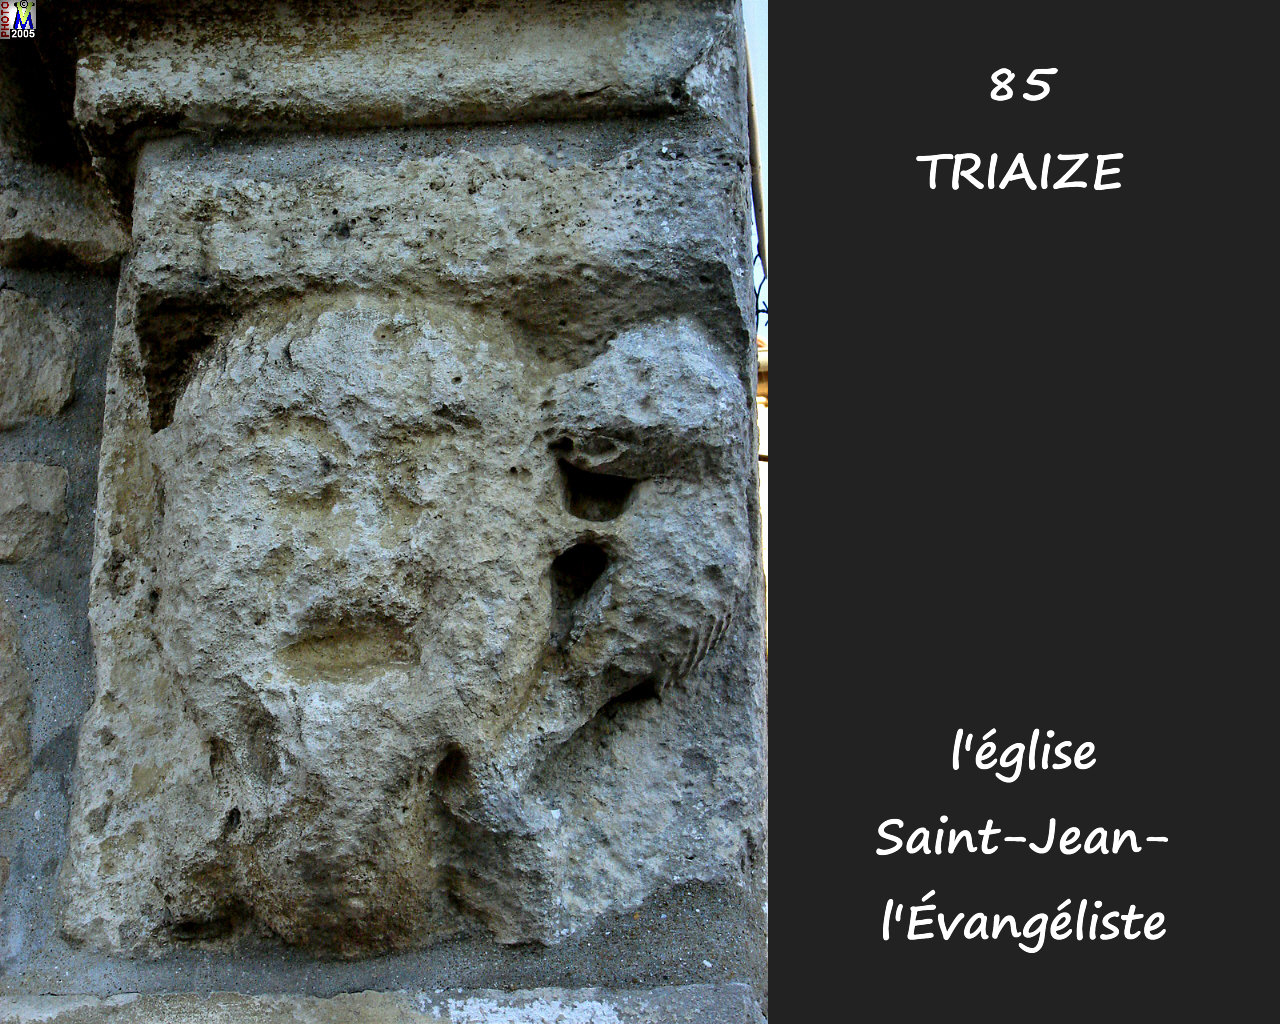 85TRIAIZE_eglise_118.jpg